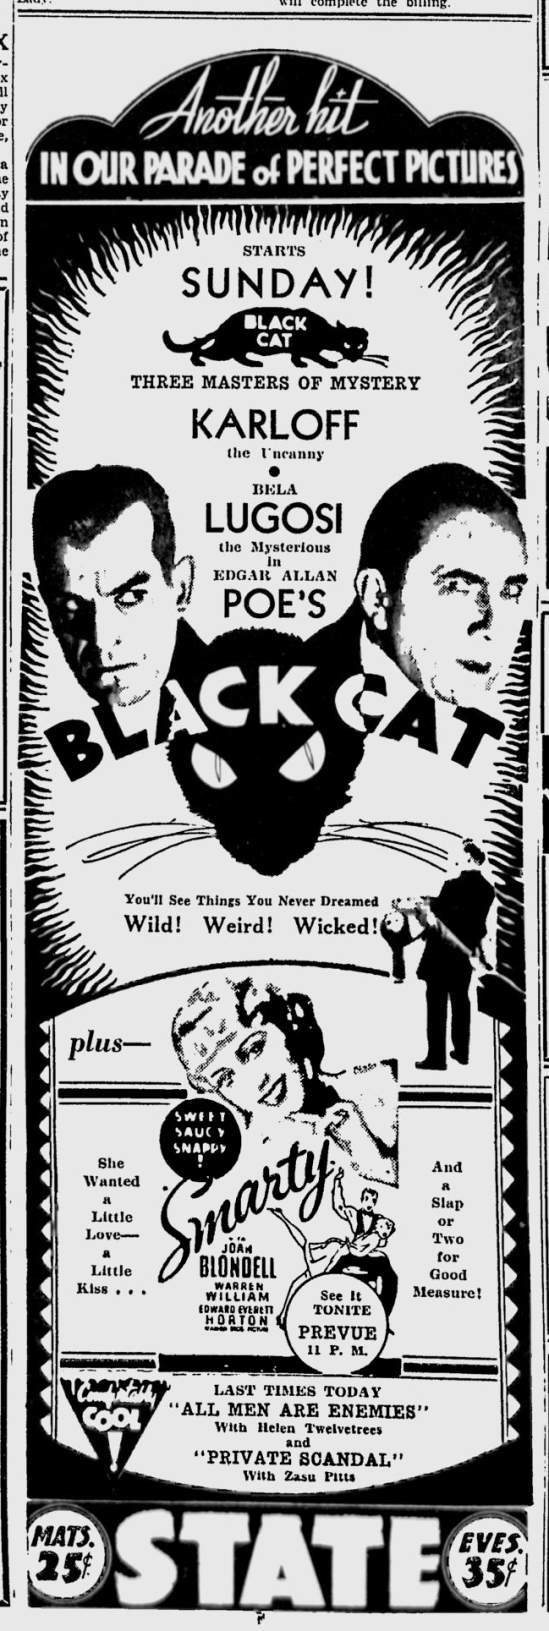 The Black Cat, Spokane, Daily Chronicle, June 16, 1934 b